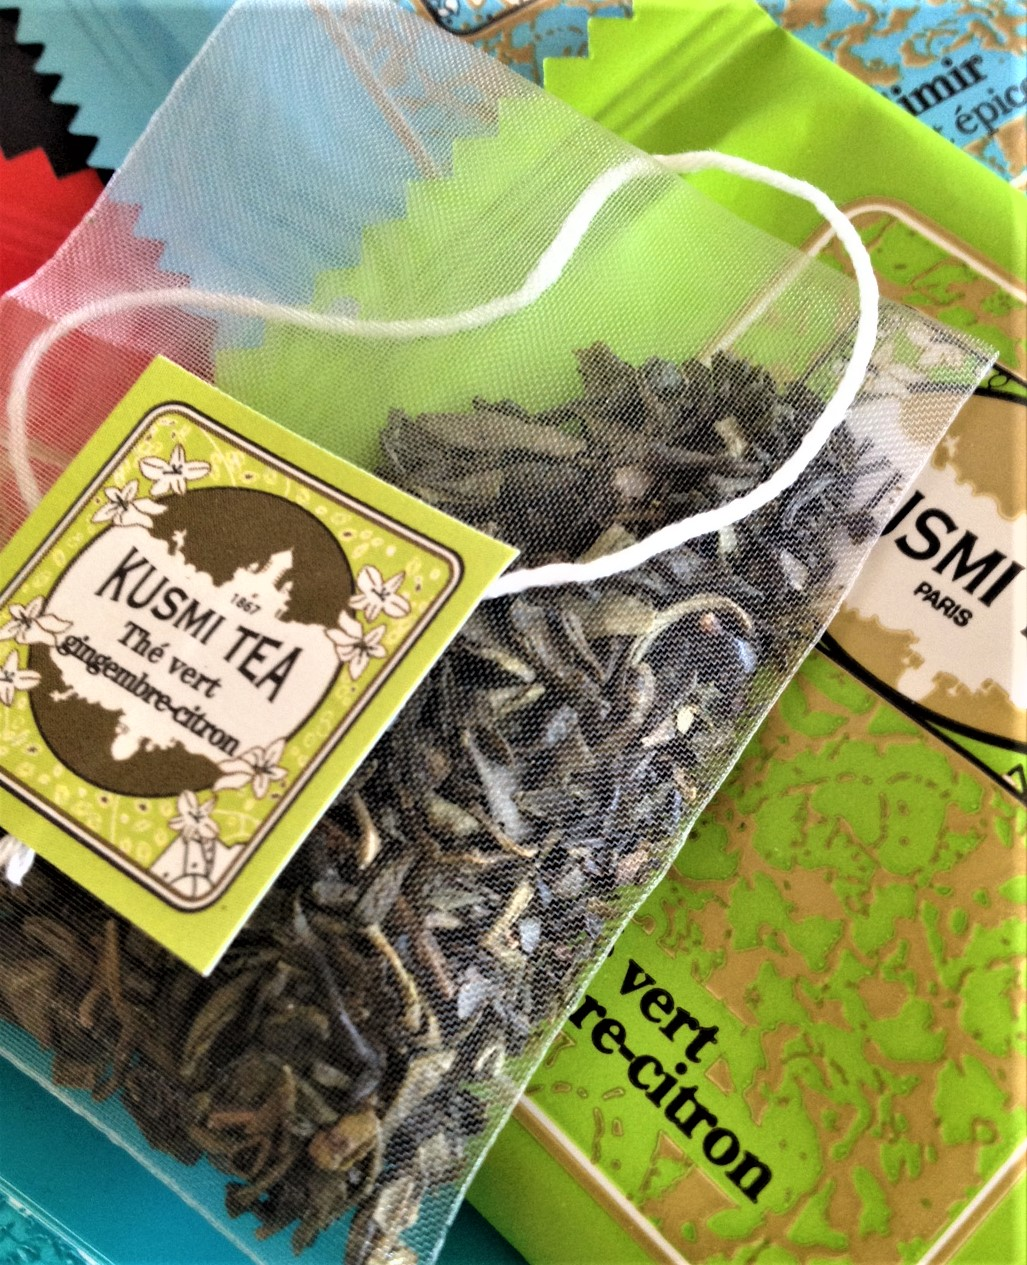 Kusmi, green tea ginger lemon